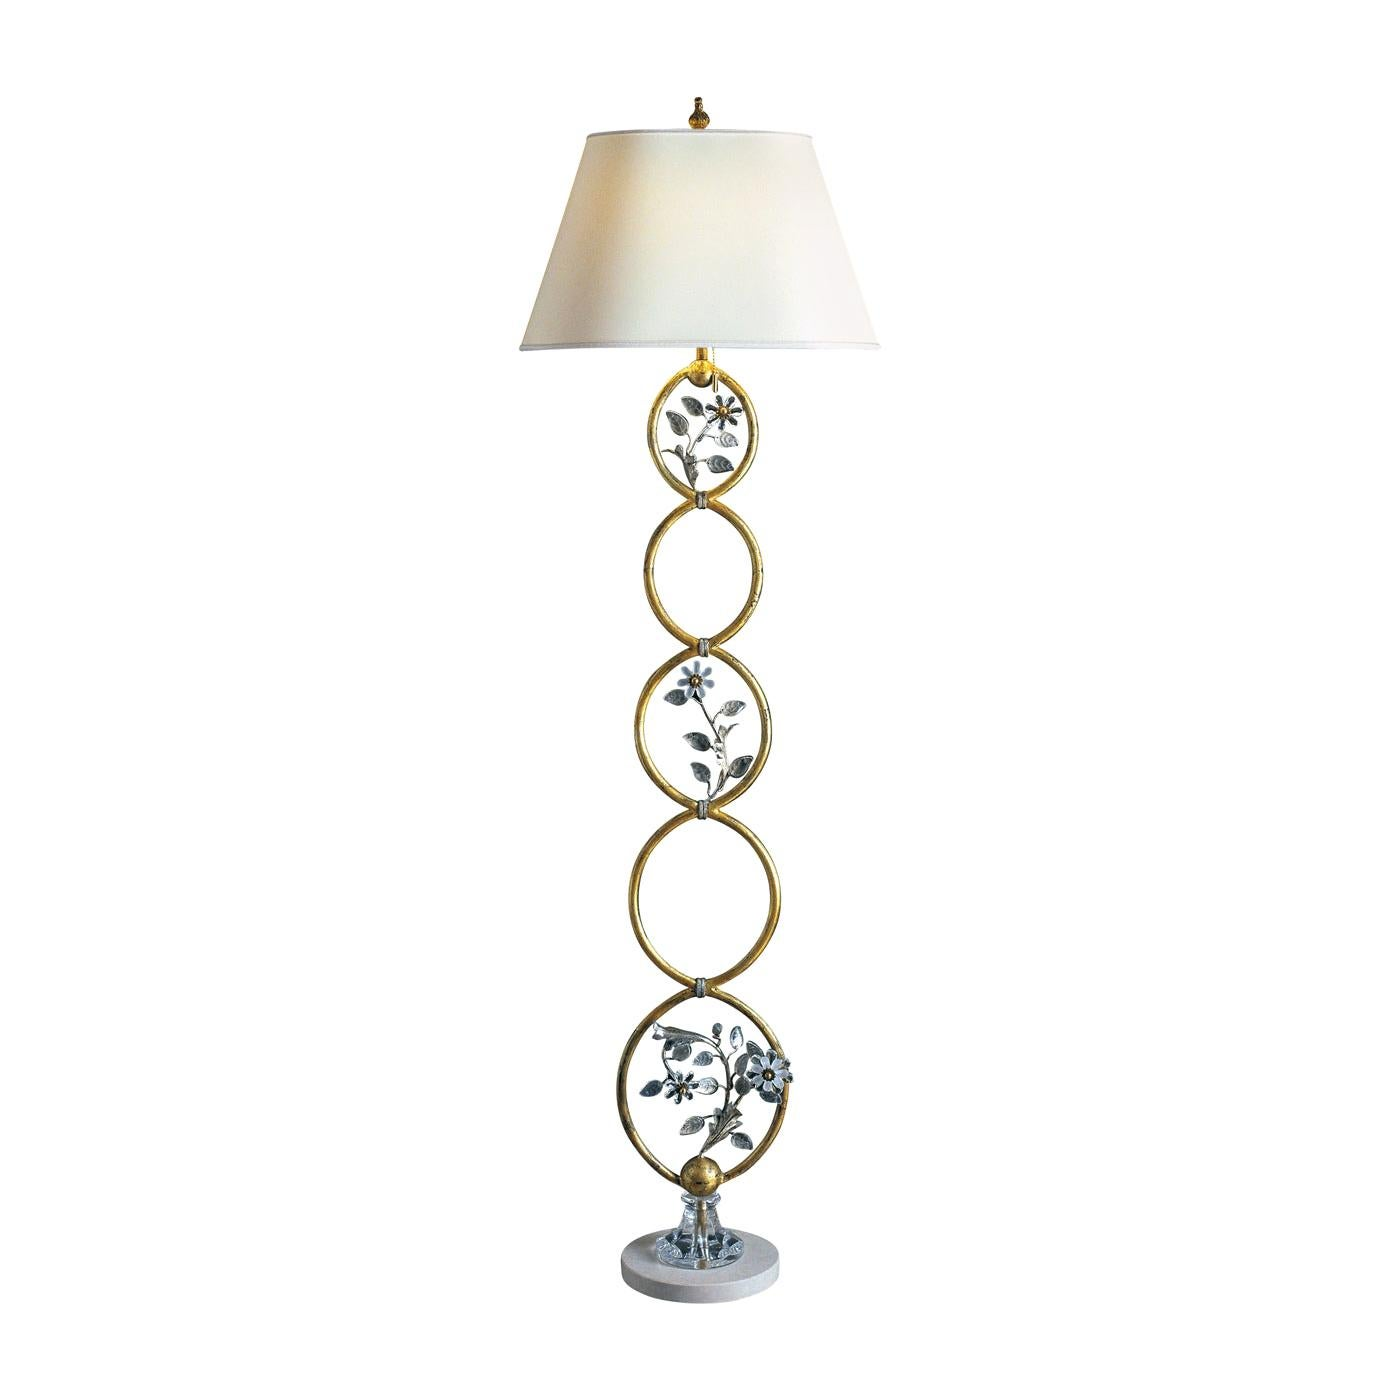 Floor Lamp with Marble Base